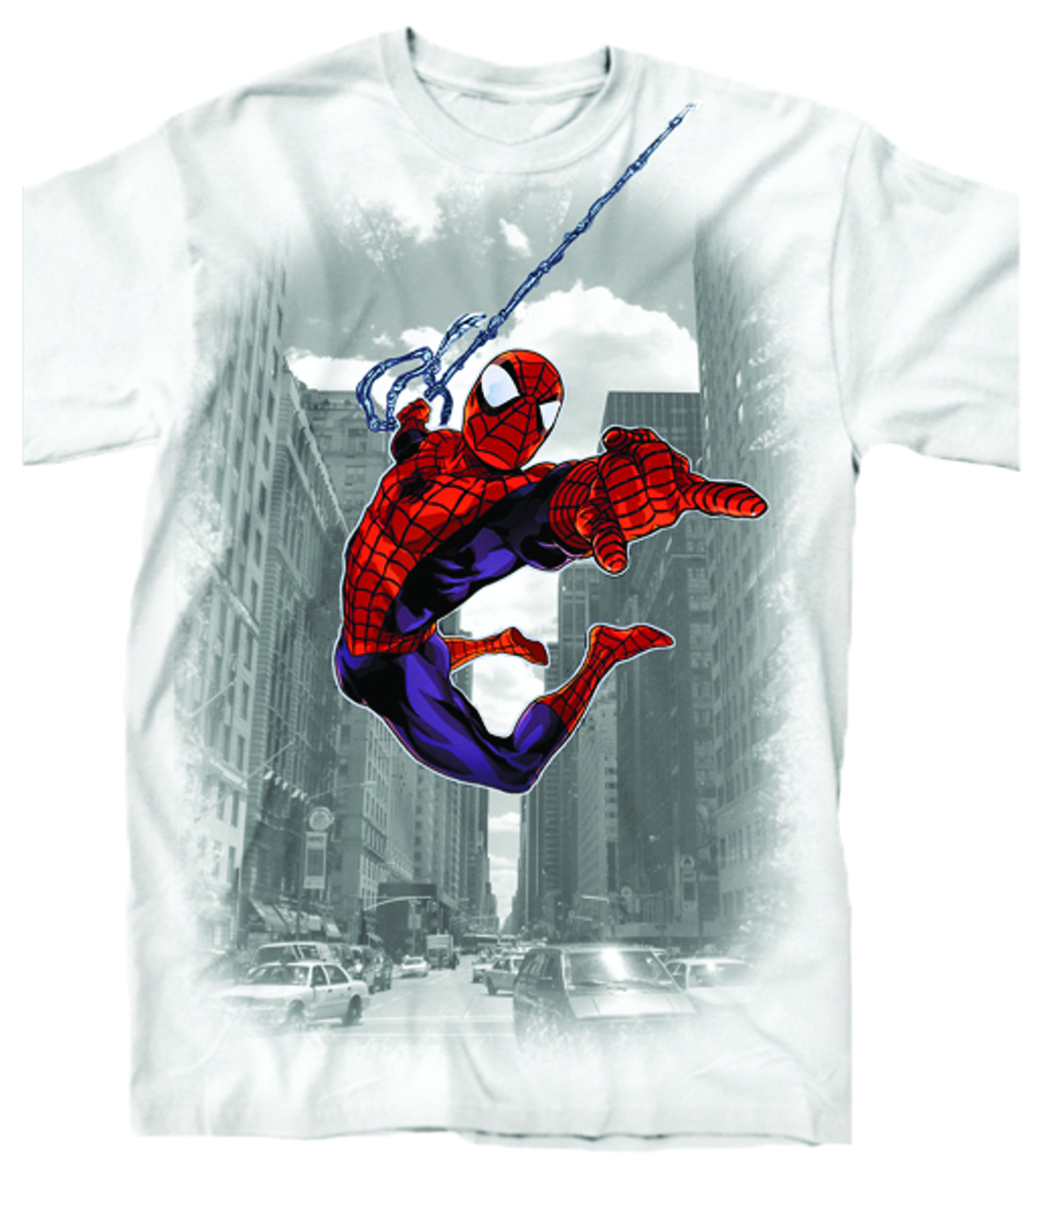 SPIDER-MAN THROUGH THE CITY PX WHT T/S MED